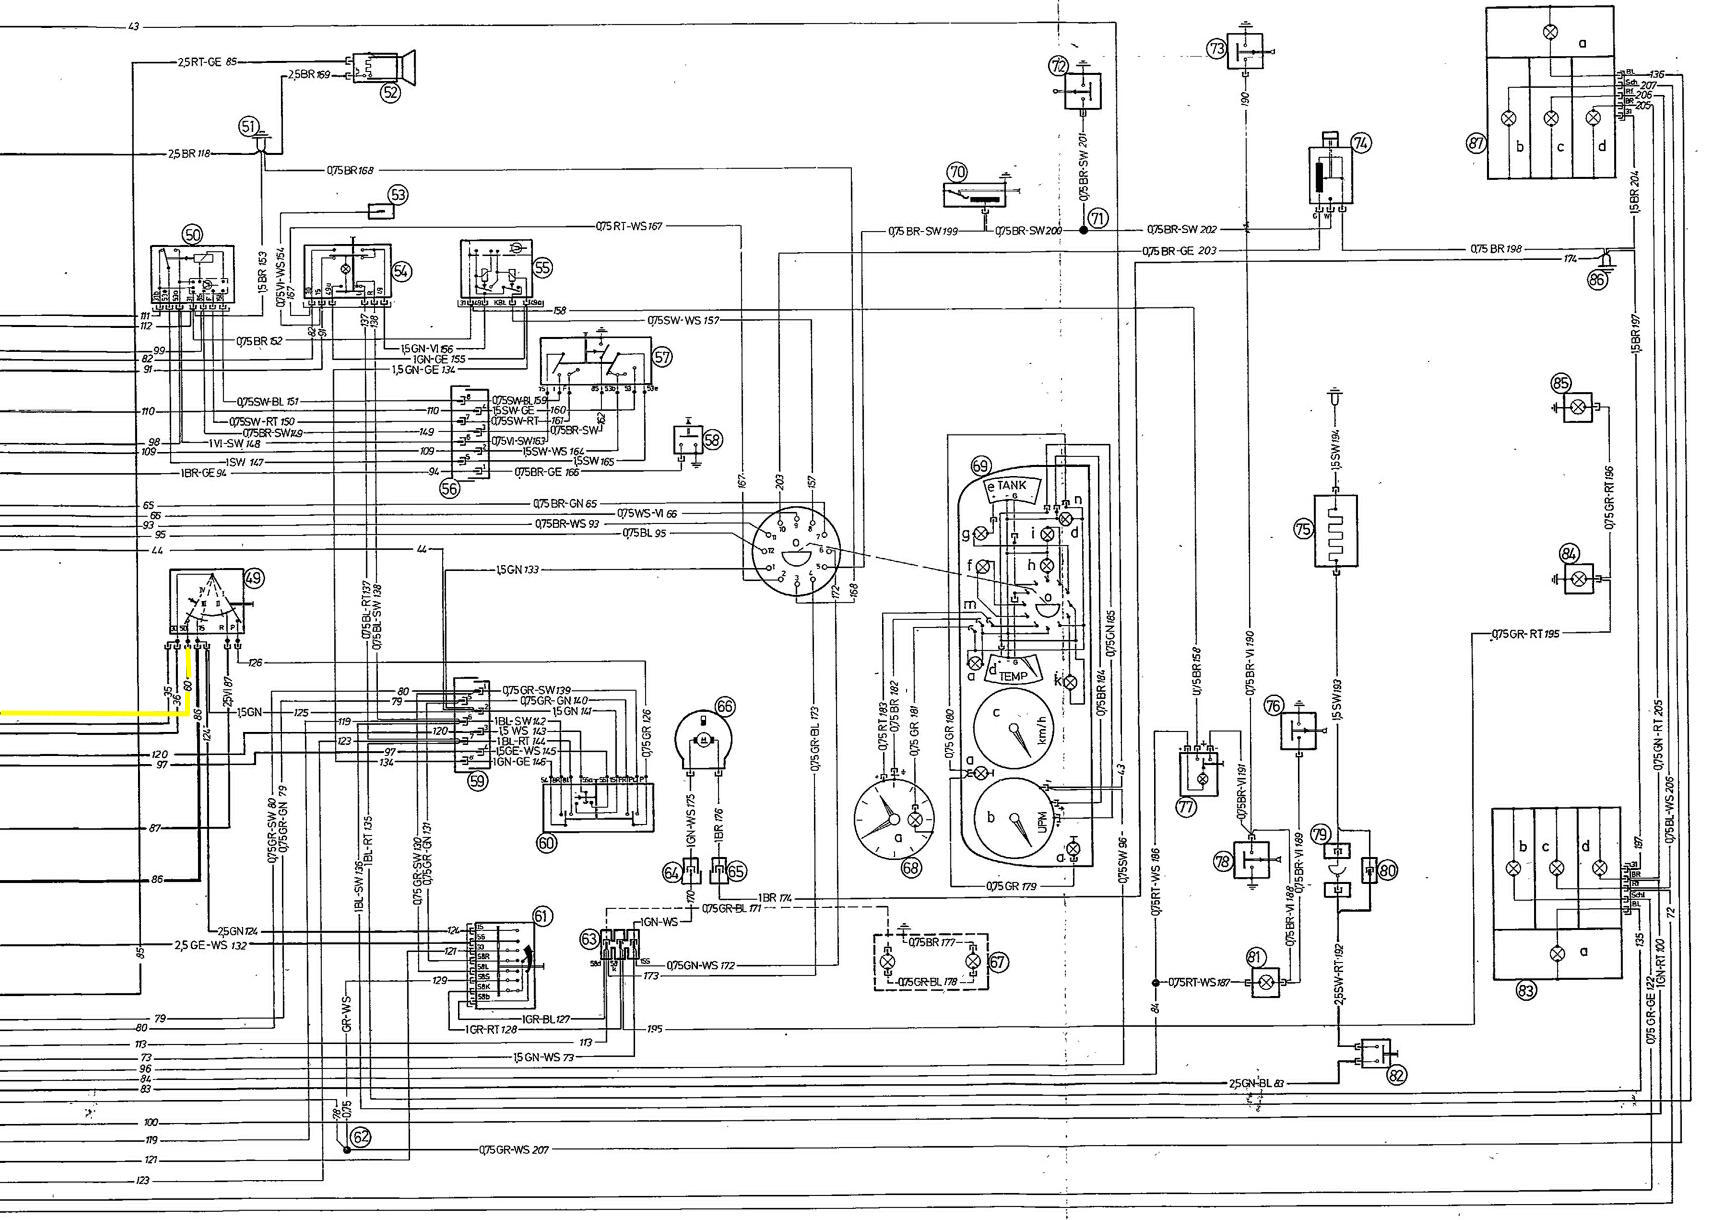 hight resolution of bmw 2002 wiring diagram wiring diagrams konsult1974 bmw 2002 wiring diagram wiring diagrams wni 2002 bmw